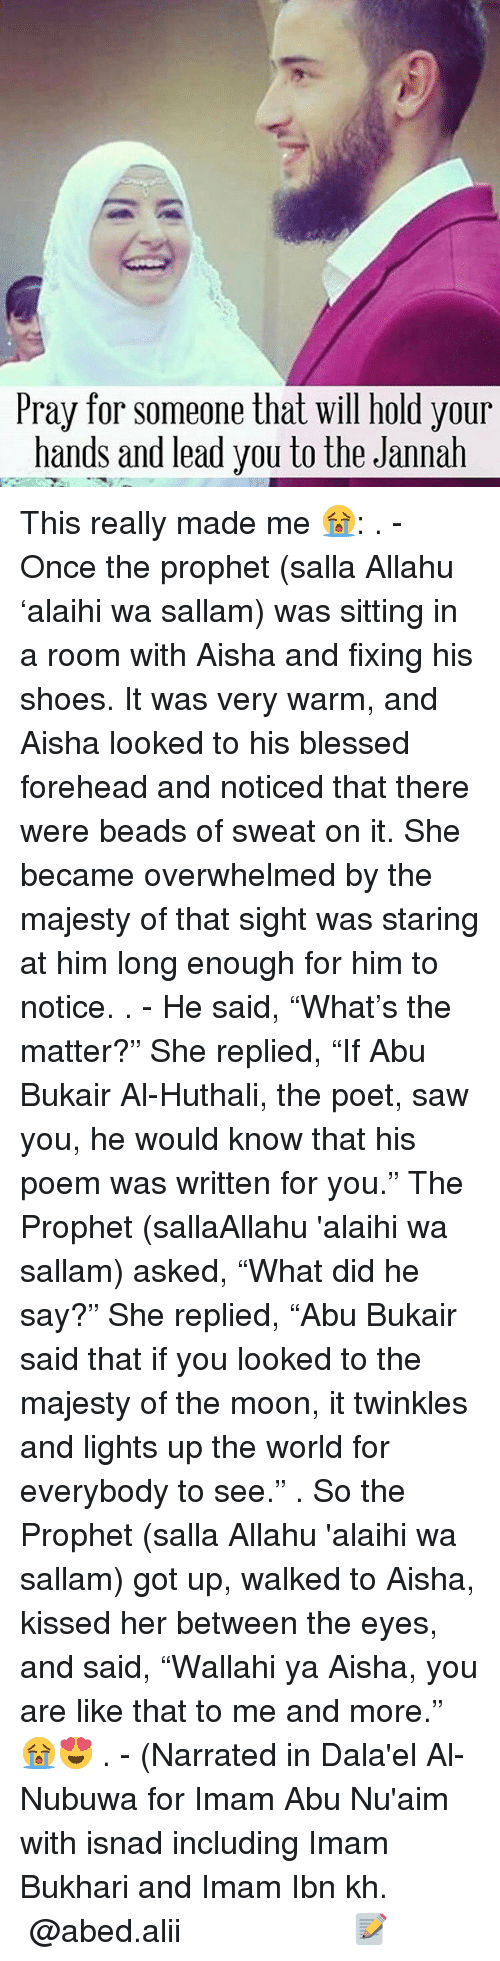 """Memes, Shoes, and Moon: Pray for someone that will hold your  hands and lead you to the Jannah This really made me 😭: . - Once the prophet (salla Allahu 'alaihi wa sallam) was sitting in a room with Aisha and fixing his shoes. It was very warm, and Aisha looked to his blessed forehead and noticed that there were beads of sweat on it. She became overwhelmed by the majesty of that sight was staring at him long enough for him to notice. . - He said, """"What's the matter?"""" She replied, """"If Abu Bukair Al-Huthali, the poet, saw you, he would know that his poem was written for you."""" The Prophet (sallaAllahu 'alaihi wa sallam) asked, """"What did he say?"""" She replied, """"Abu Bukair said that if you looked to the majesty of the moon, it twinkles and lights up the world for everybody to see."""" . So the Prophet (salla Allahu 'alaihi wa sallam) got up, walked to Aisha, kissed her between the eyes, and said, """"Wallahi ya Aisha, you are like that to me and more."""" 😭😍 . - (Narrated in Dala'el Al-Nubuwa for Imam Abu Nu'aim with isnad including Imam Bukhari and Imam Ibn kh. ▃▃▃▃▃▃▃▃▃▃▃▃▃▃▃▃▃▃ @abed.alii 📝"""